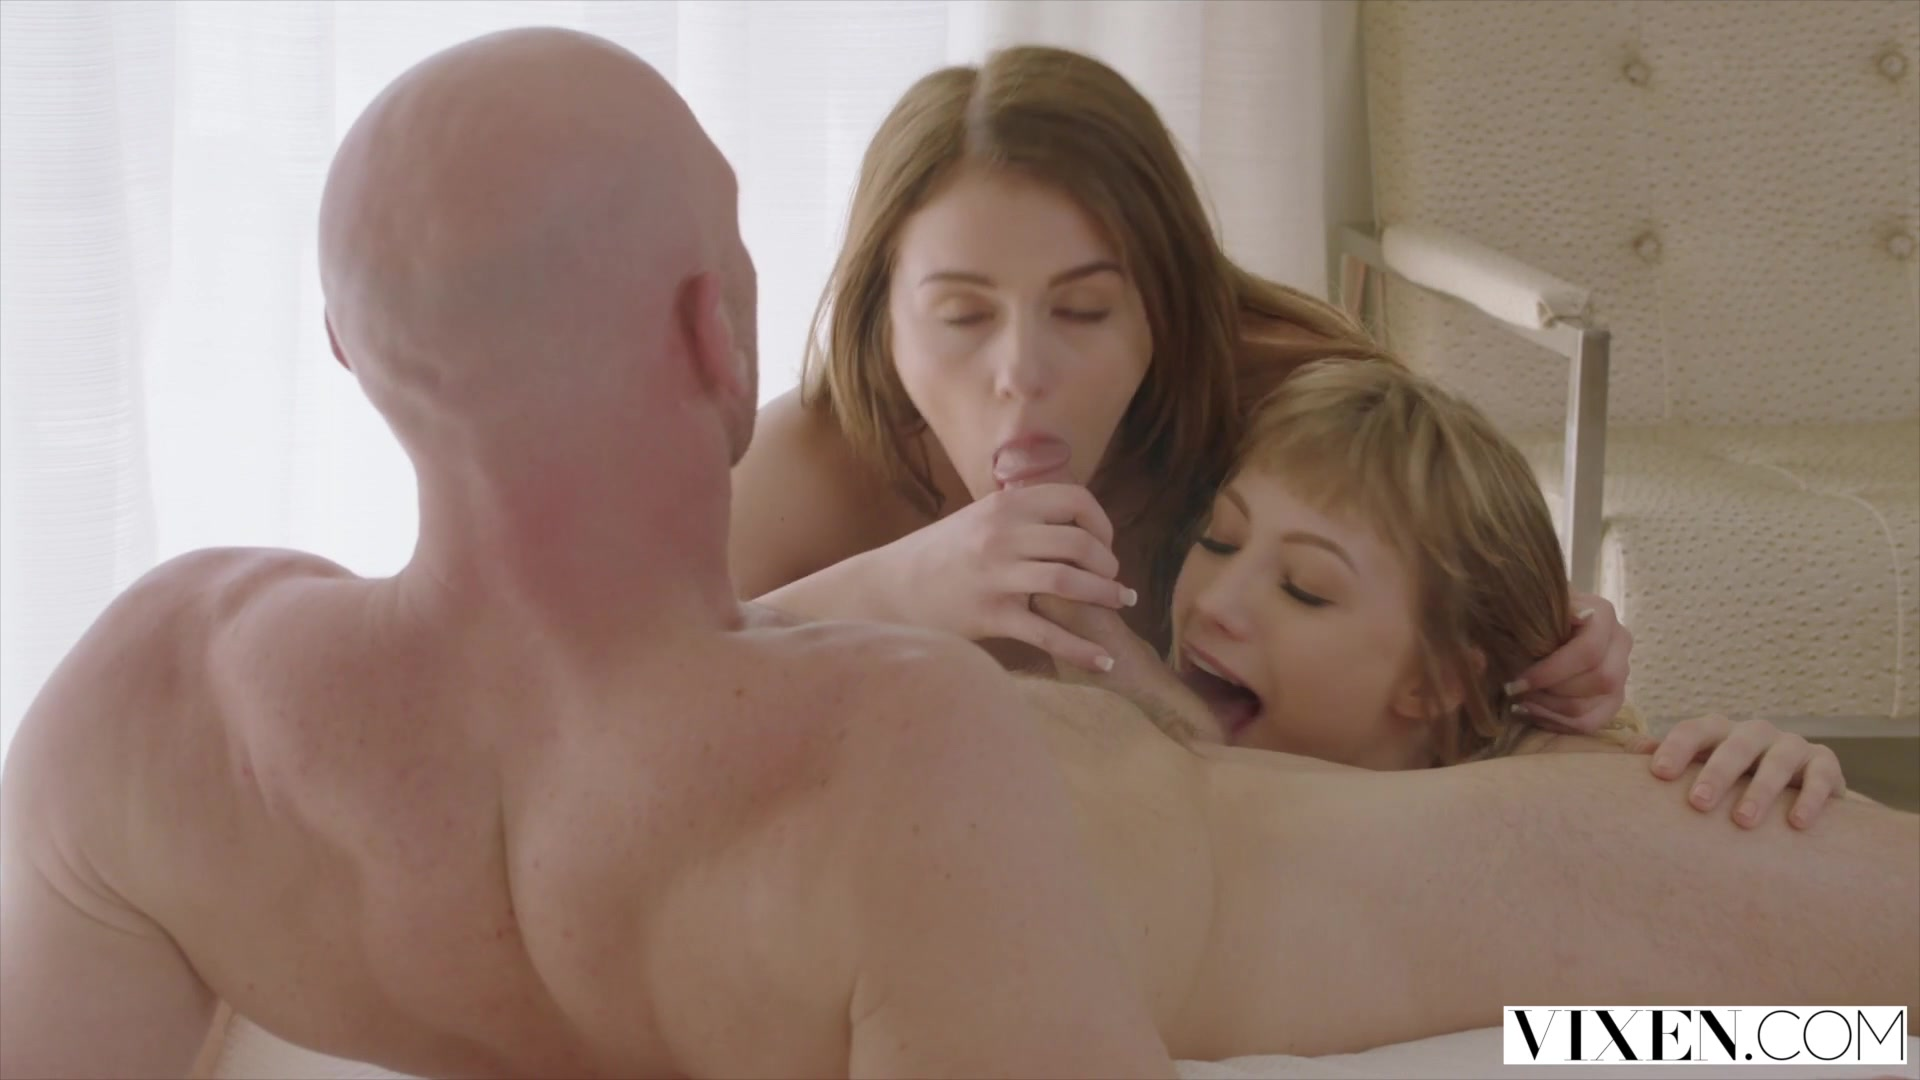 Porn for husband and wife Hot Nude